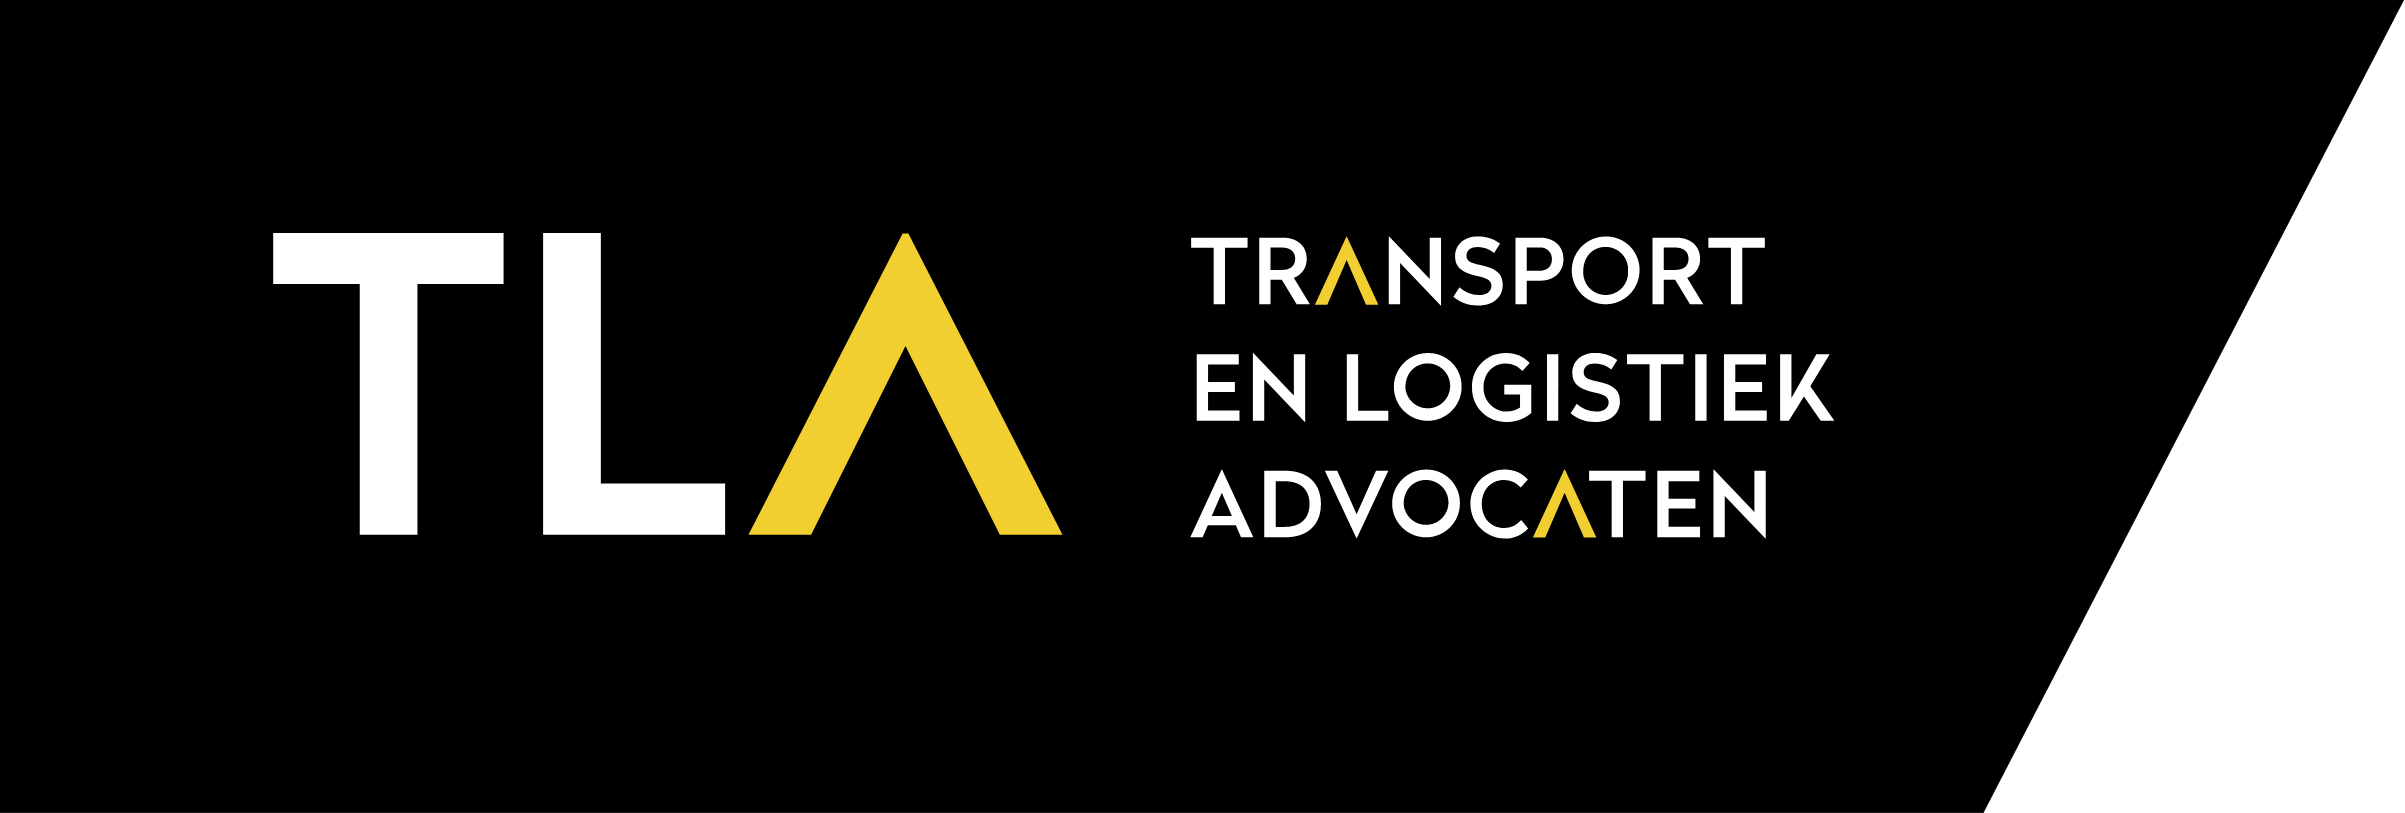 TLA - transport en logistiek advocaten